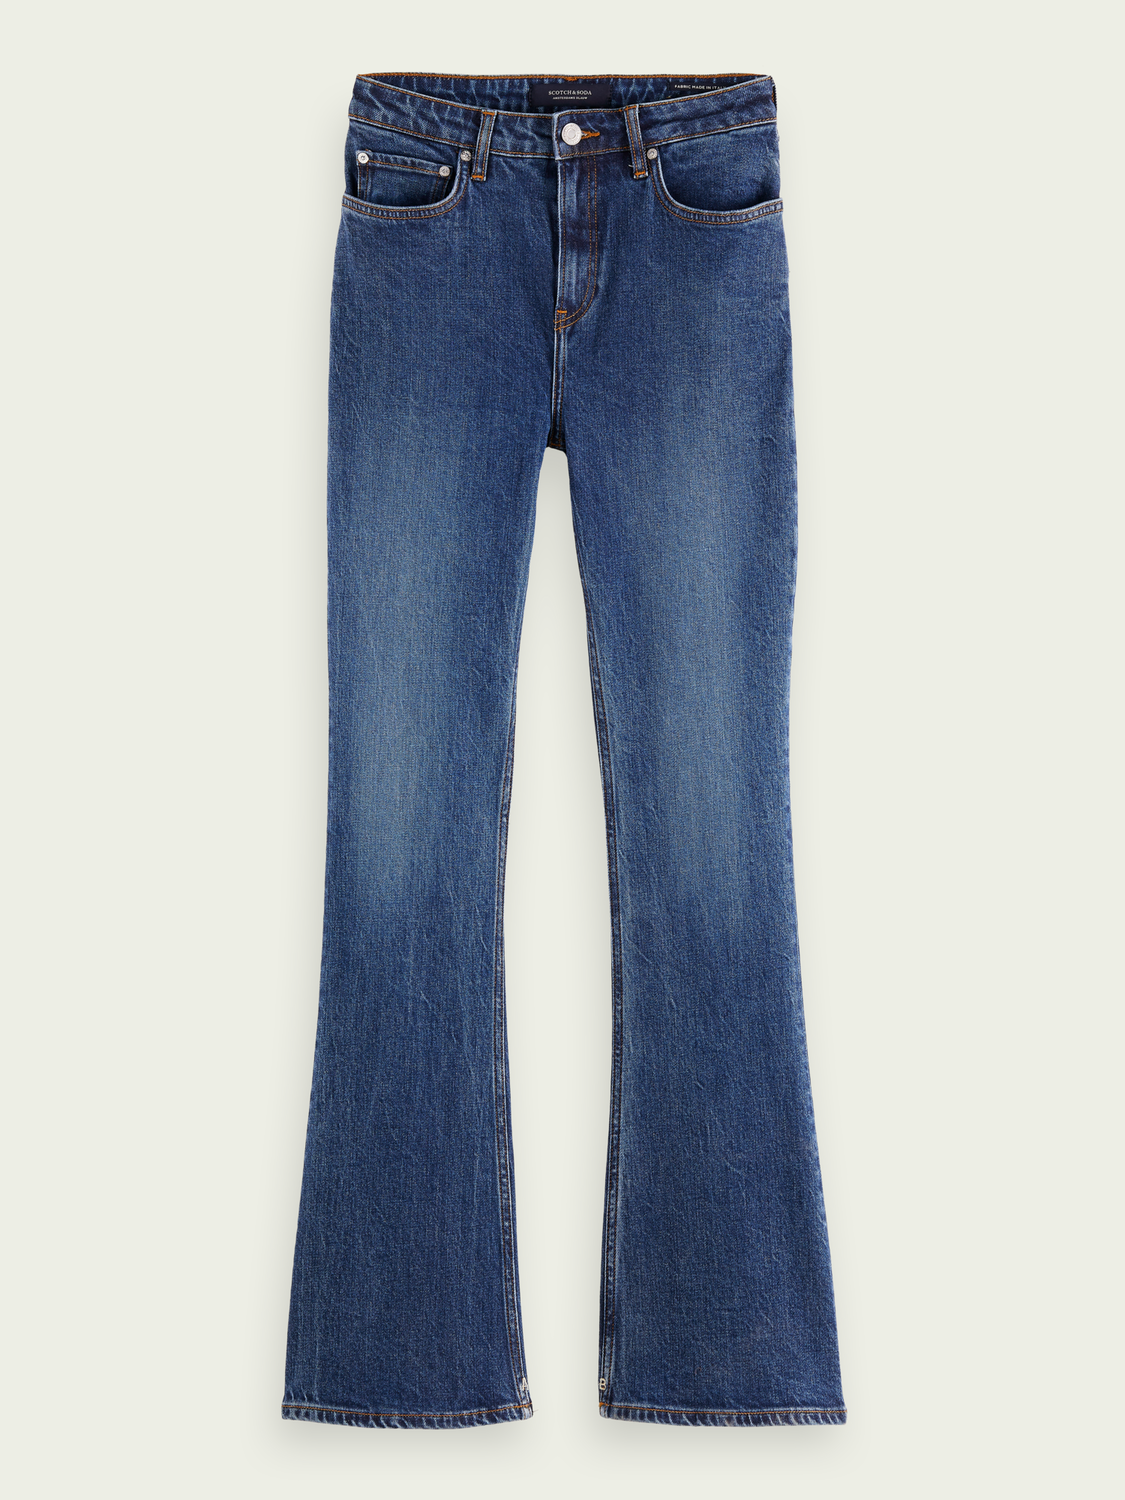 Women The Charm high-rise flared jeans - Take Me Out